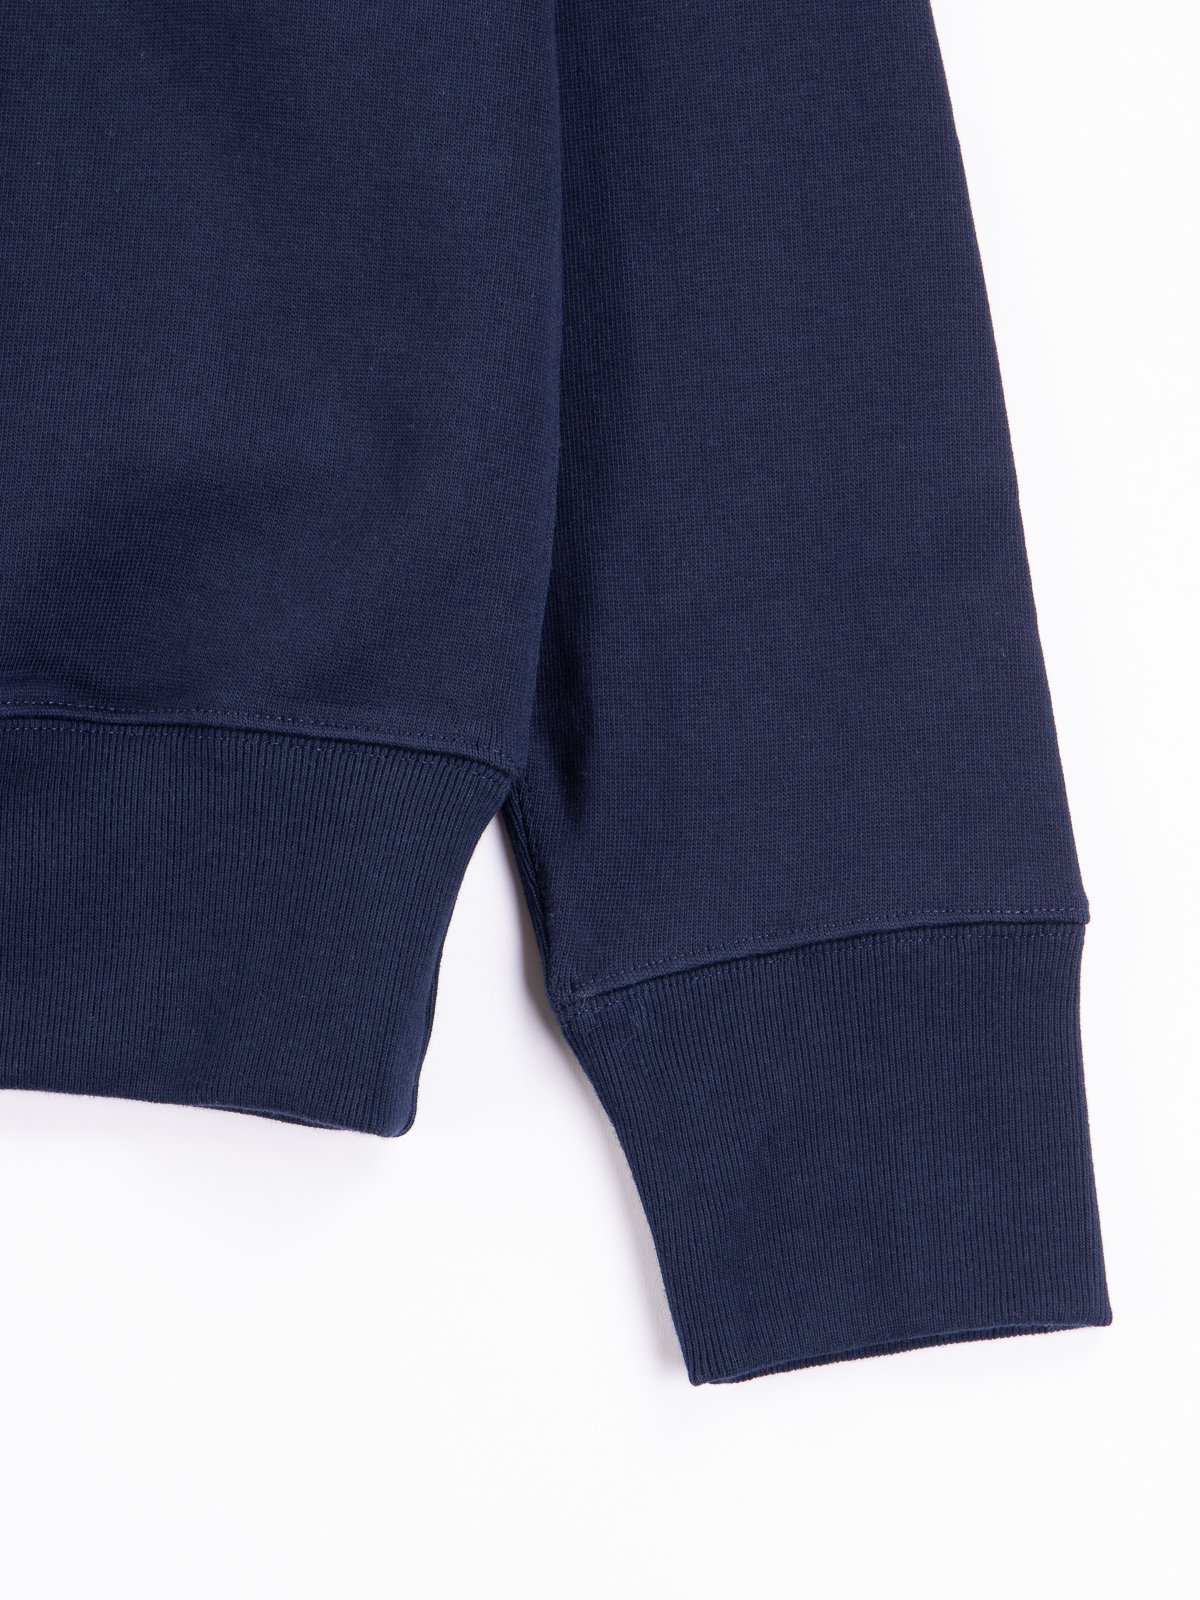 Ink Blue 3S48 Organic Cotton Heavy Sweater - Image 4